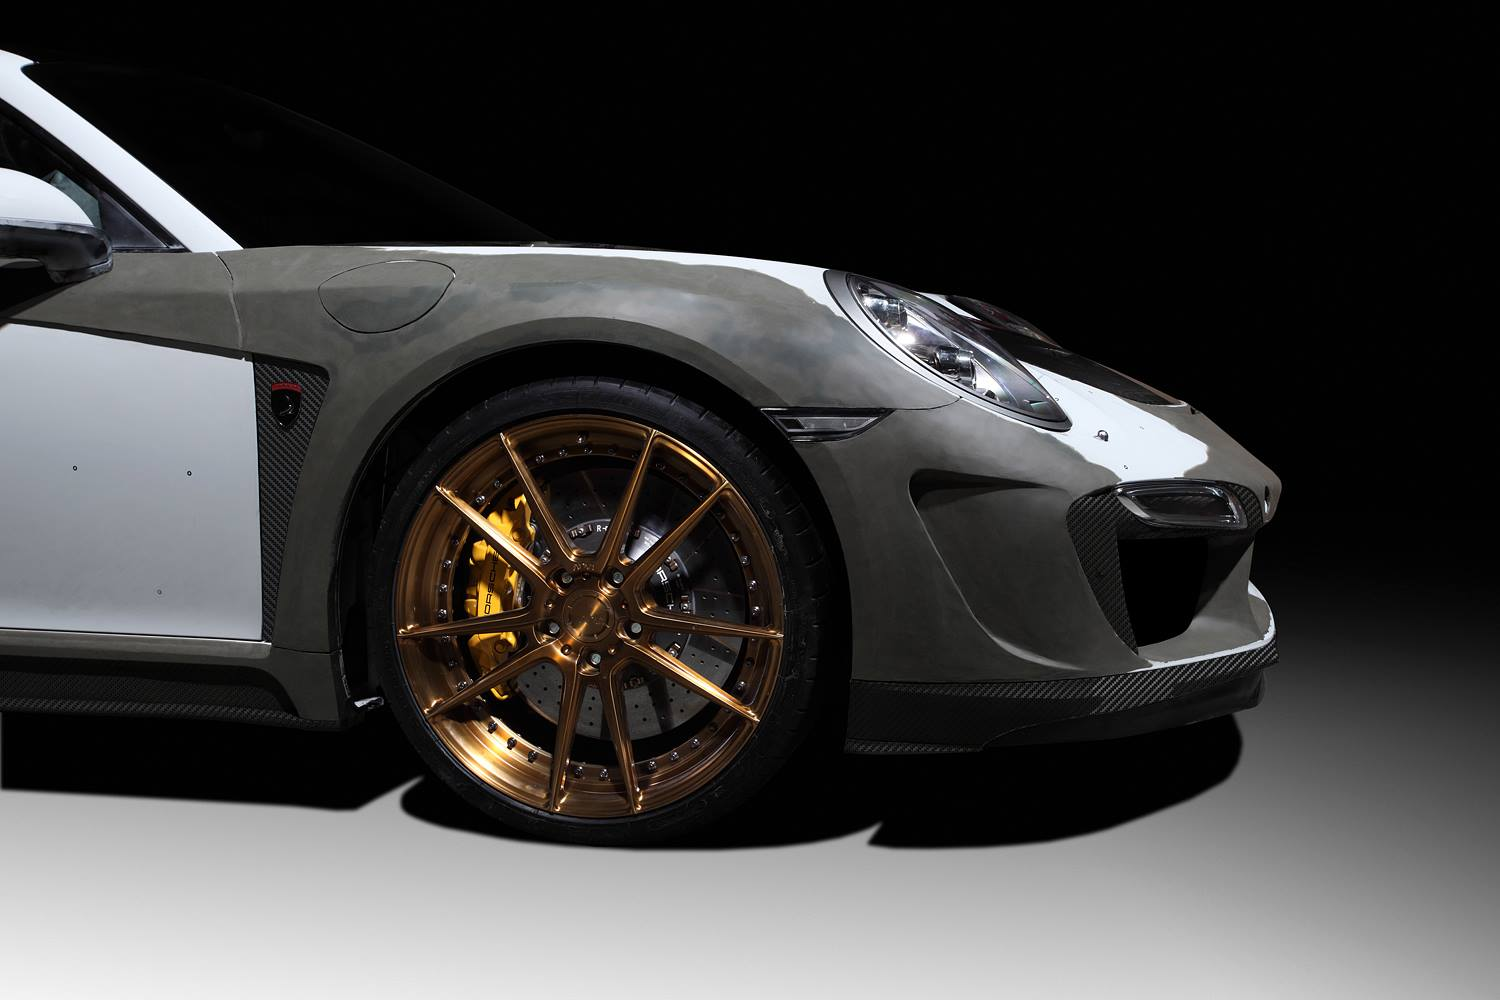 New porsche 911 turbo singer gtr tuning project announced by topcar